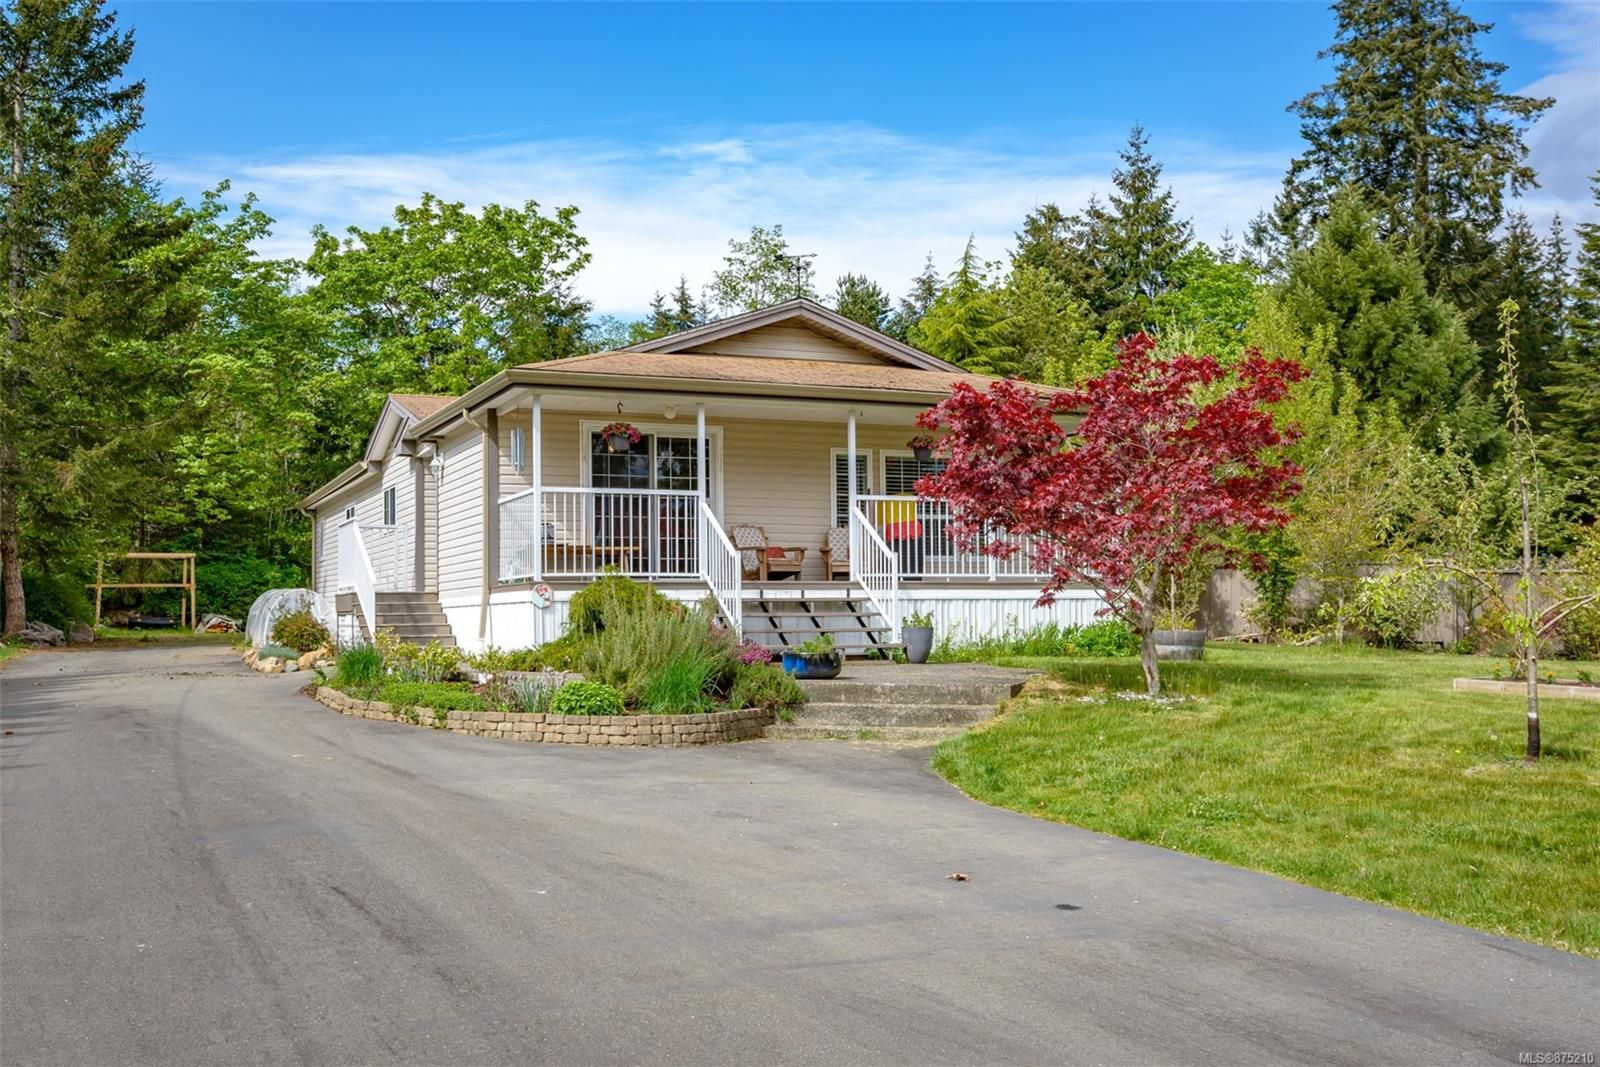 Main Photo: 6619 Mystery Beach Rd in : CV Union Bay/Fanny Bay Manufactured Home for sale (Comox Valley)  : MLS®# 875210